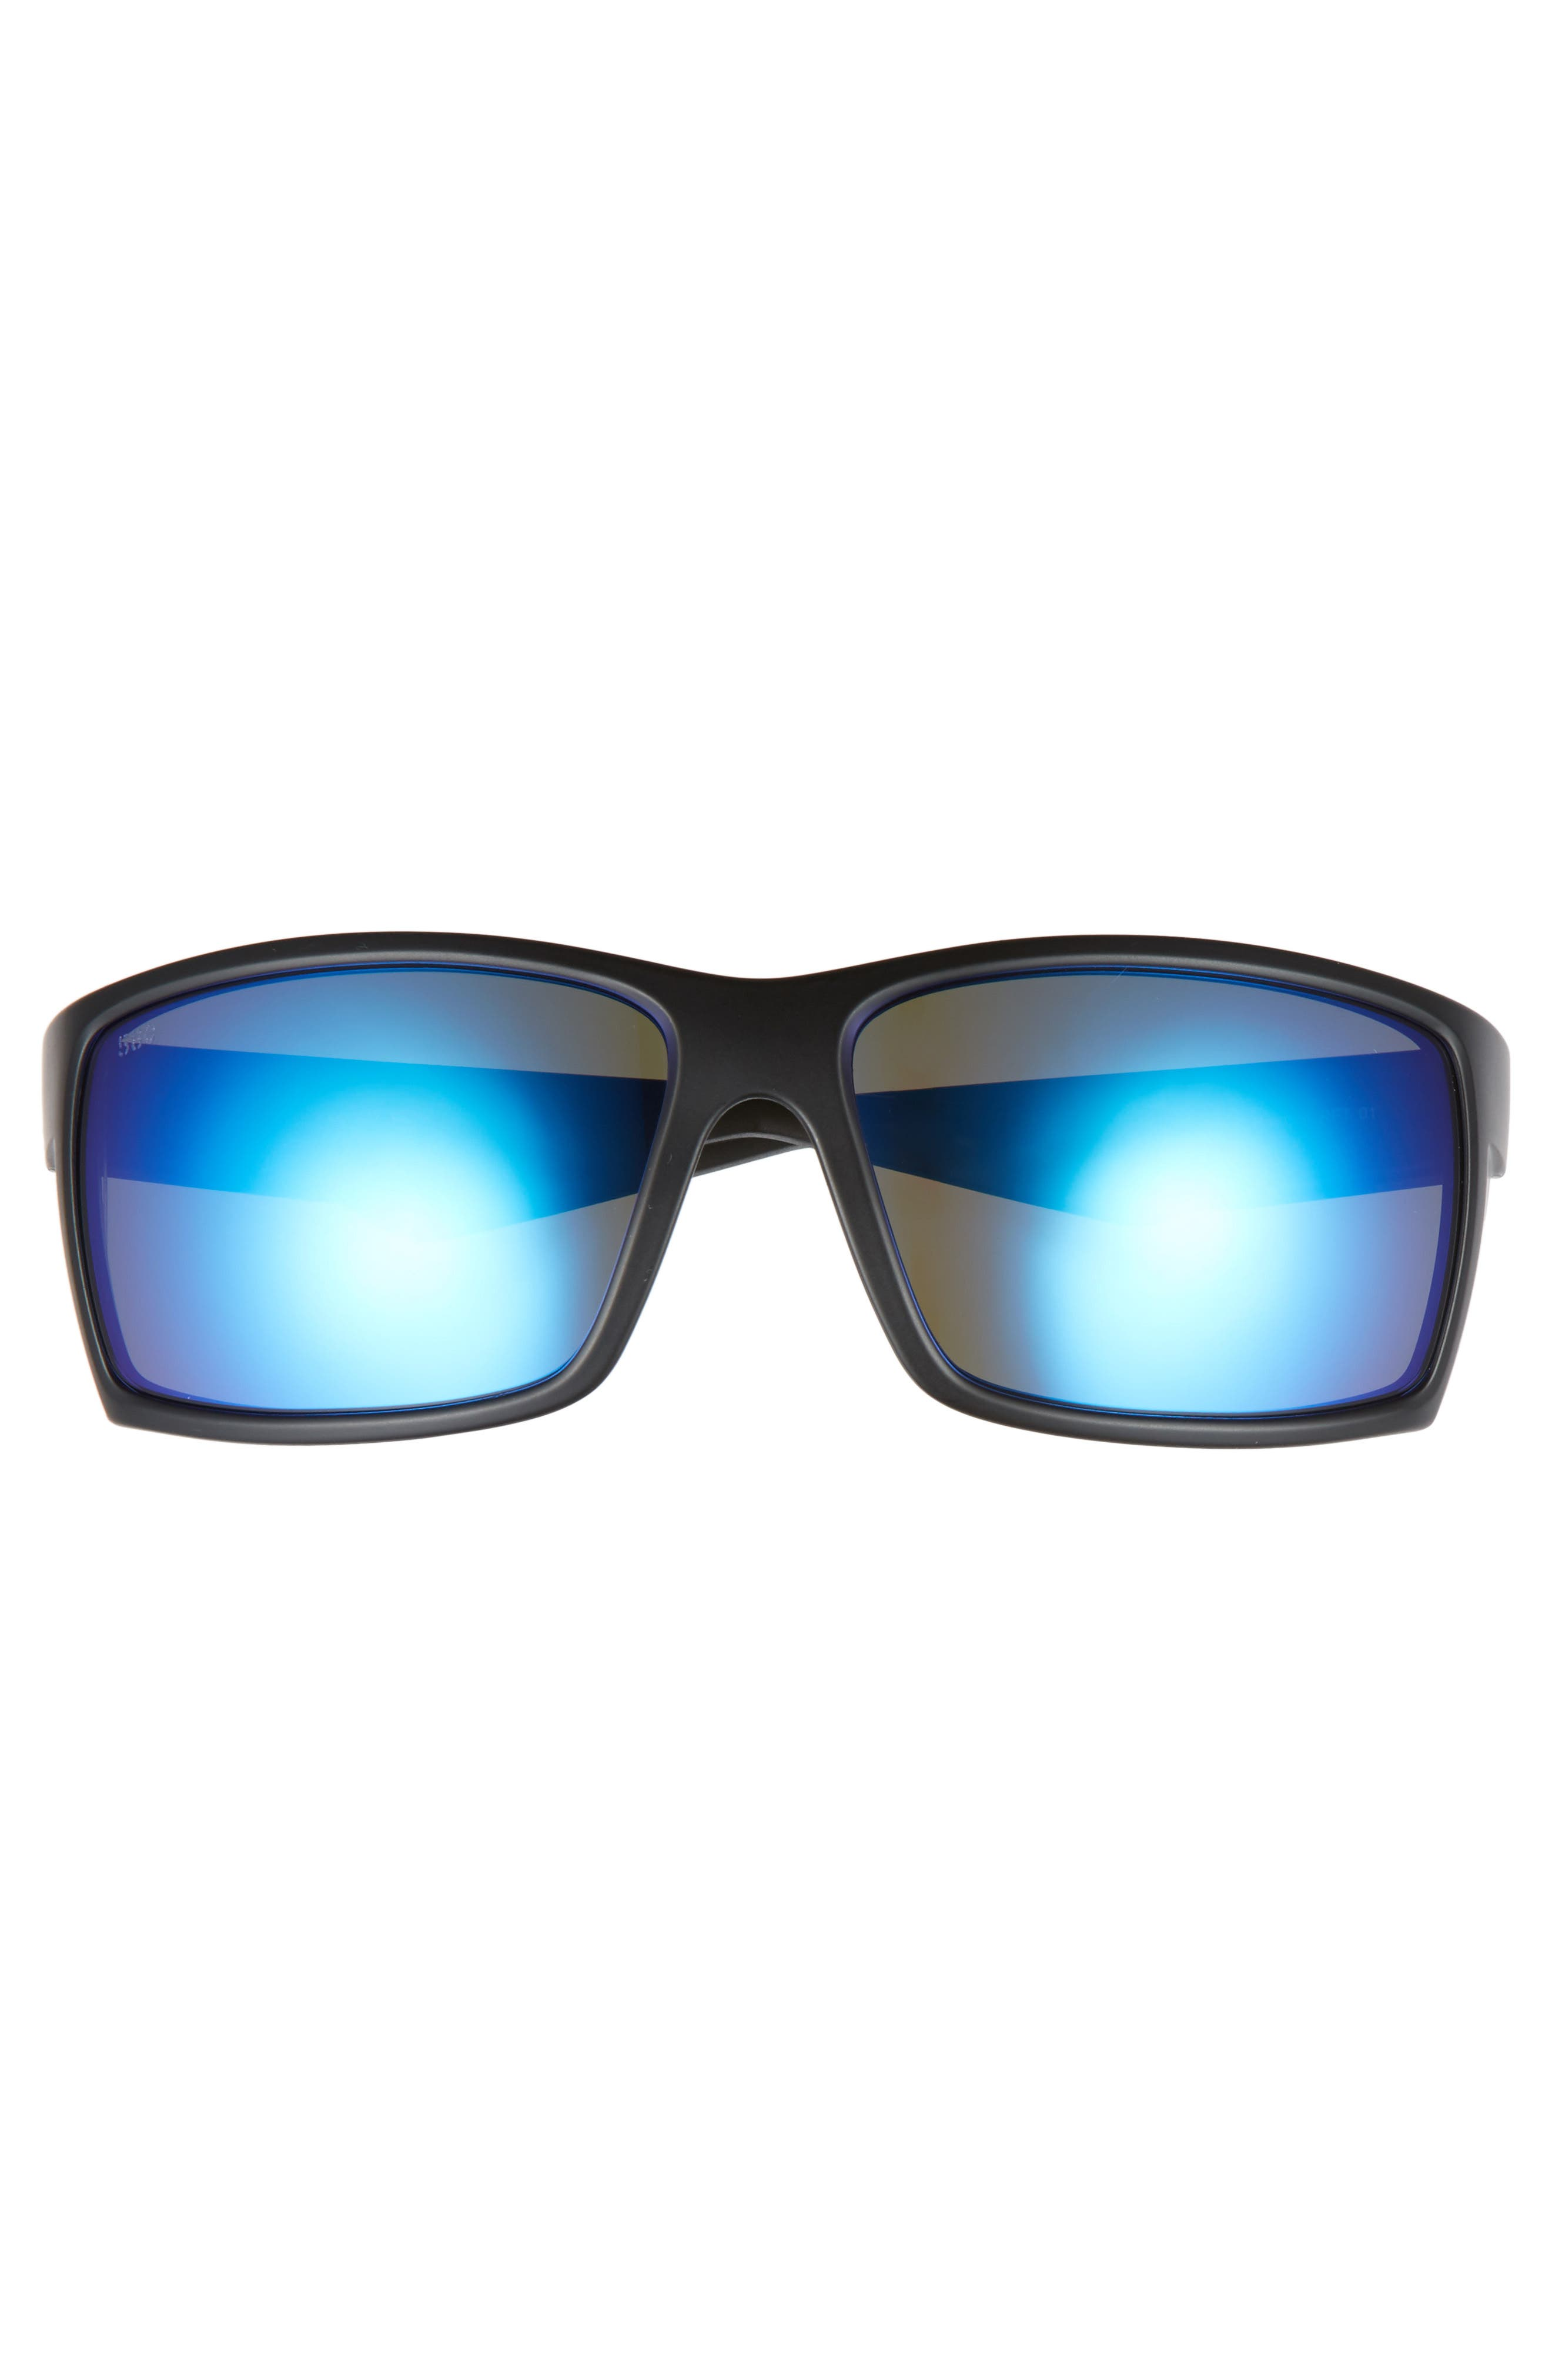 Reefton 65mm Polarized Sunglasses,                             Alternate thumbnail 2, color,                             BLACKOUT/ BLUE MIRROR